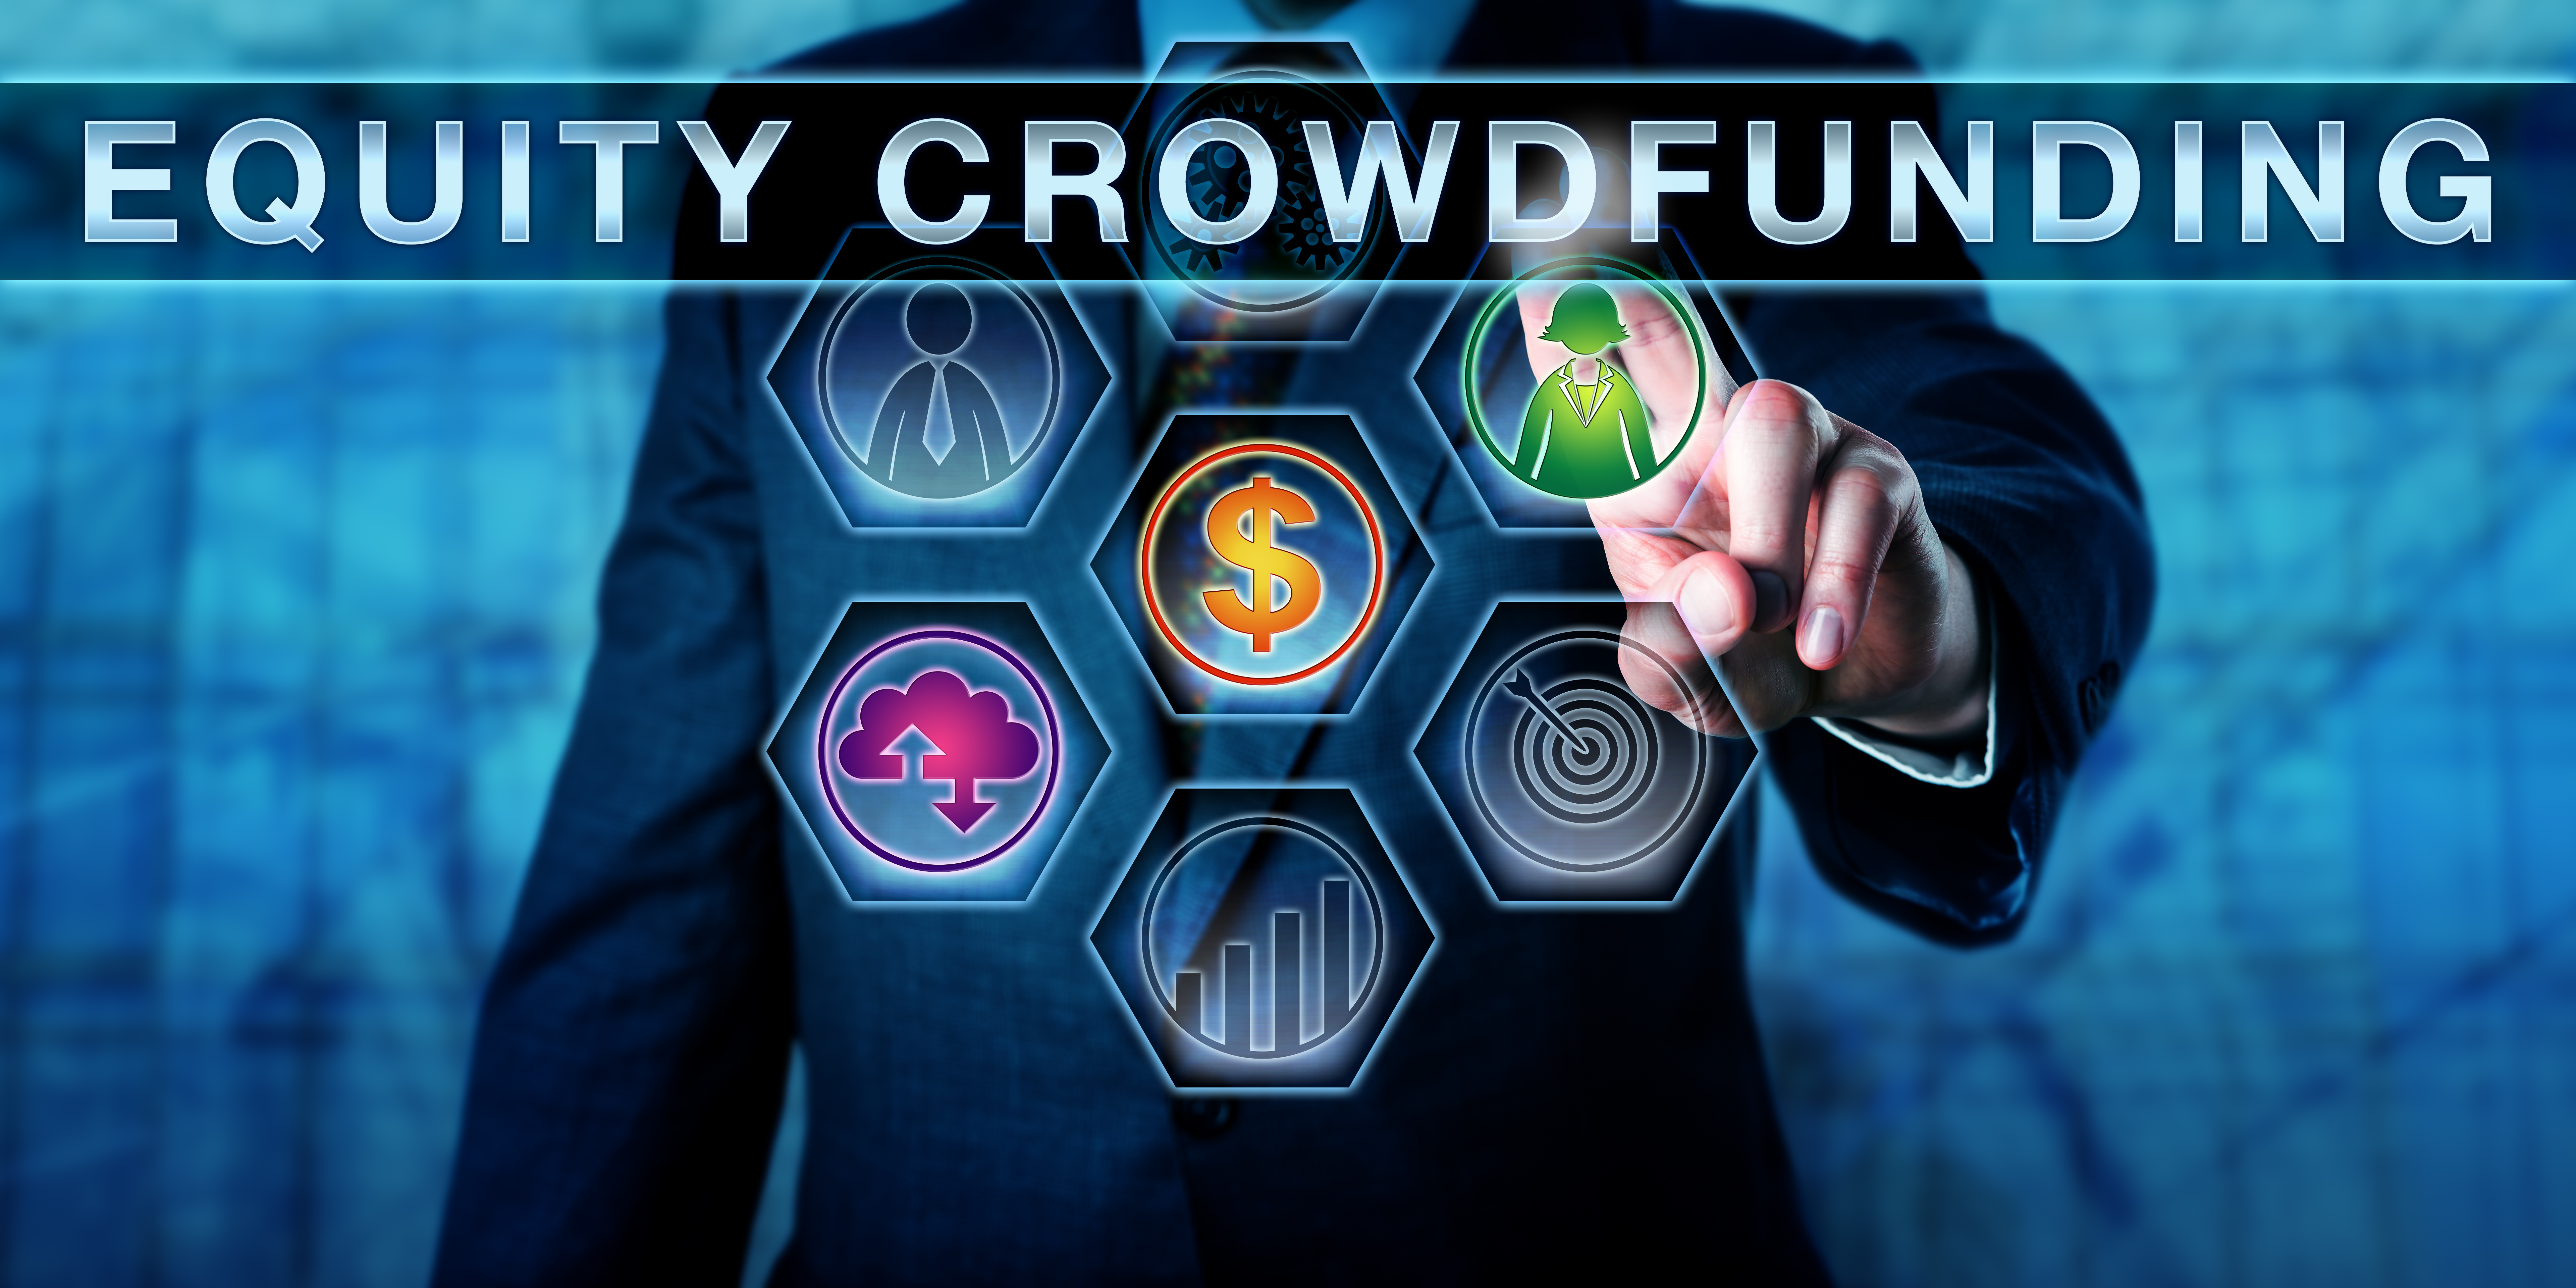 EQUITY CROWDFUNDING: numbers and potential